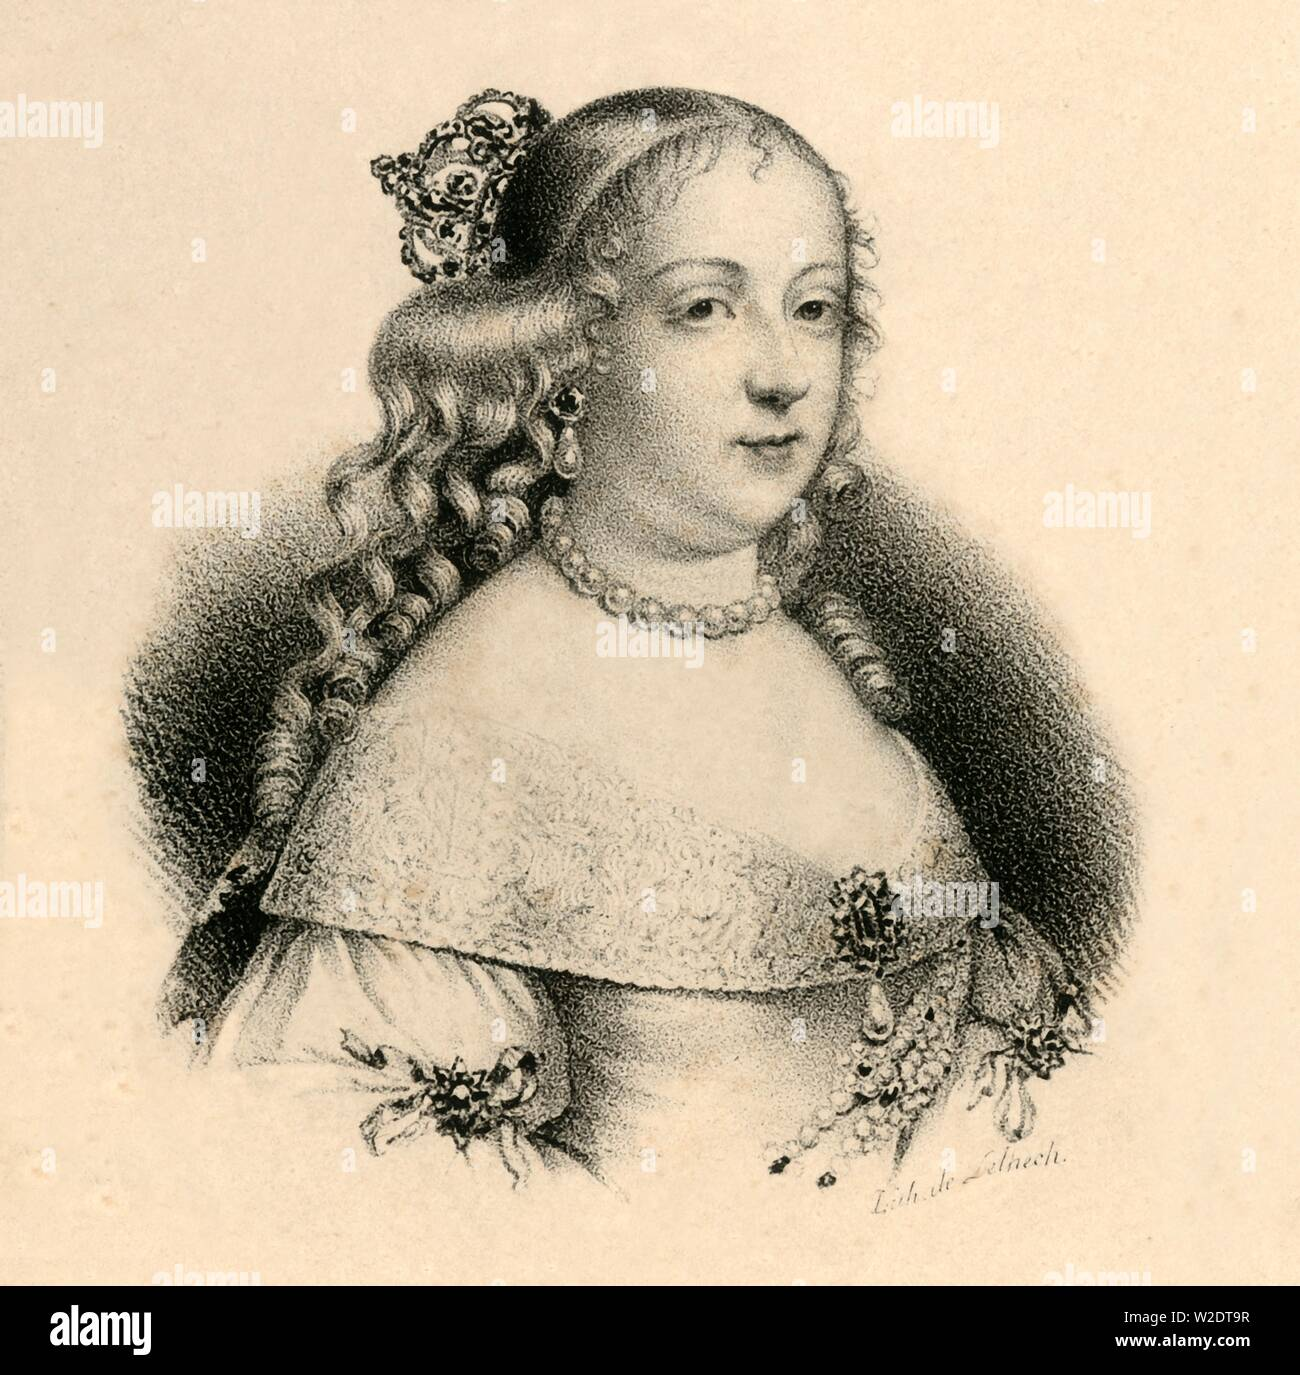 """'Marie Therese d'Autriche', (1717-1780), c1830. Maria Theresa (1717-1780) from the House of Habsburg was Holy Roman Empress and German Queen. From """"Lith de Delpech"""". [Delpech, Paris] - Stock Image"""